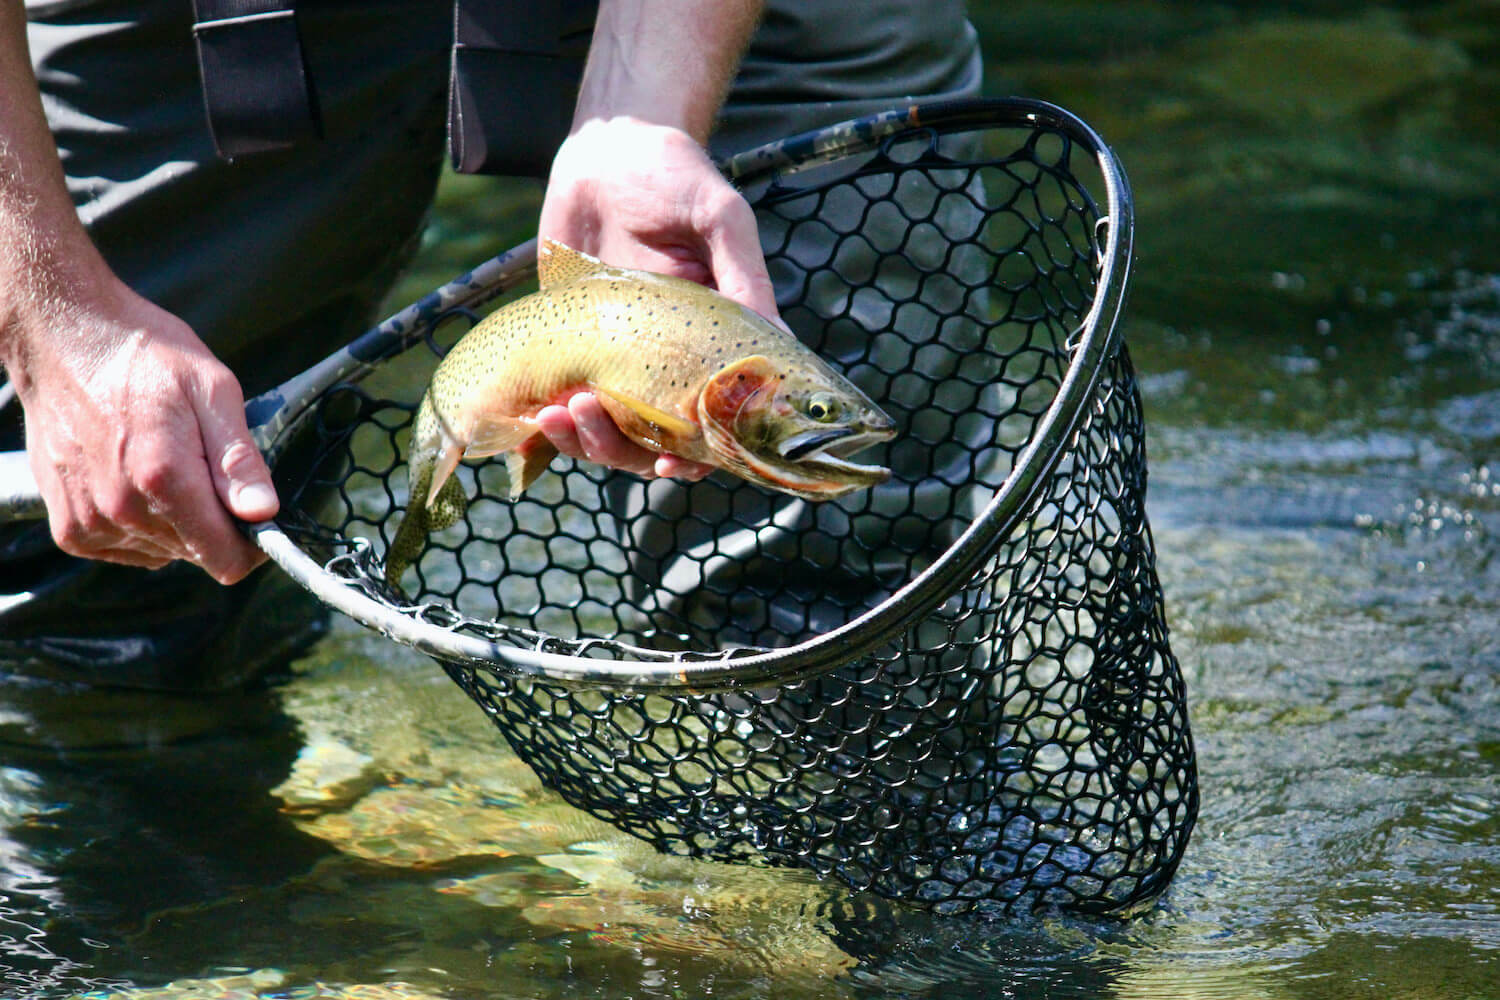 This best fly fishing net photo shows a fly fishing net being tested by the author.